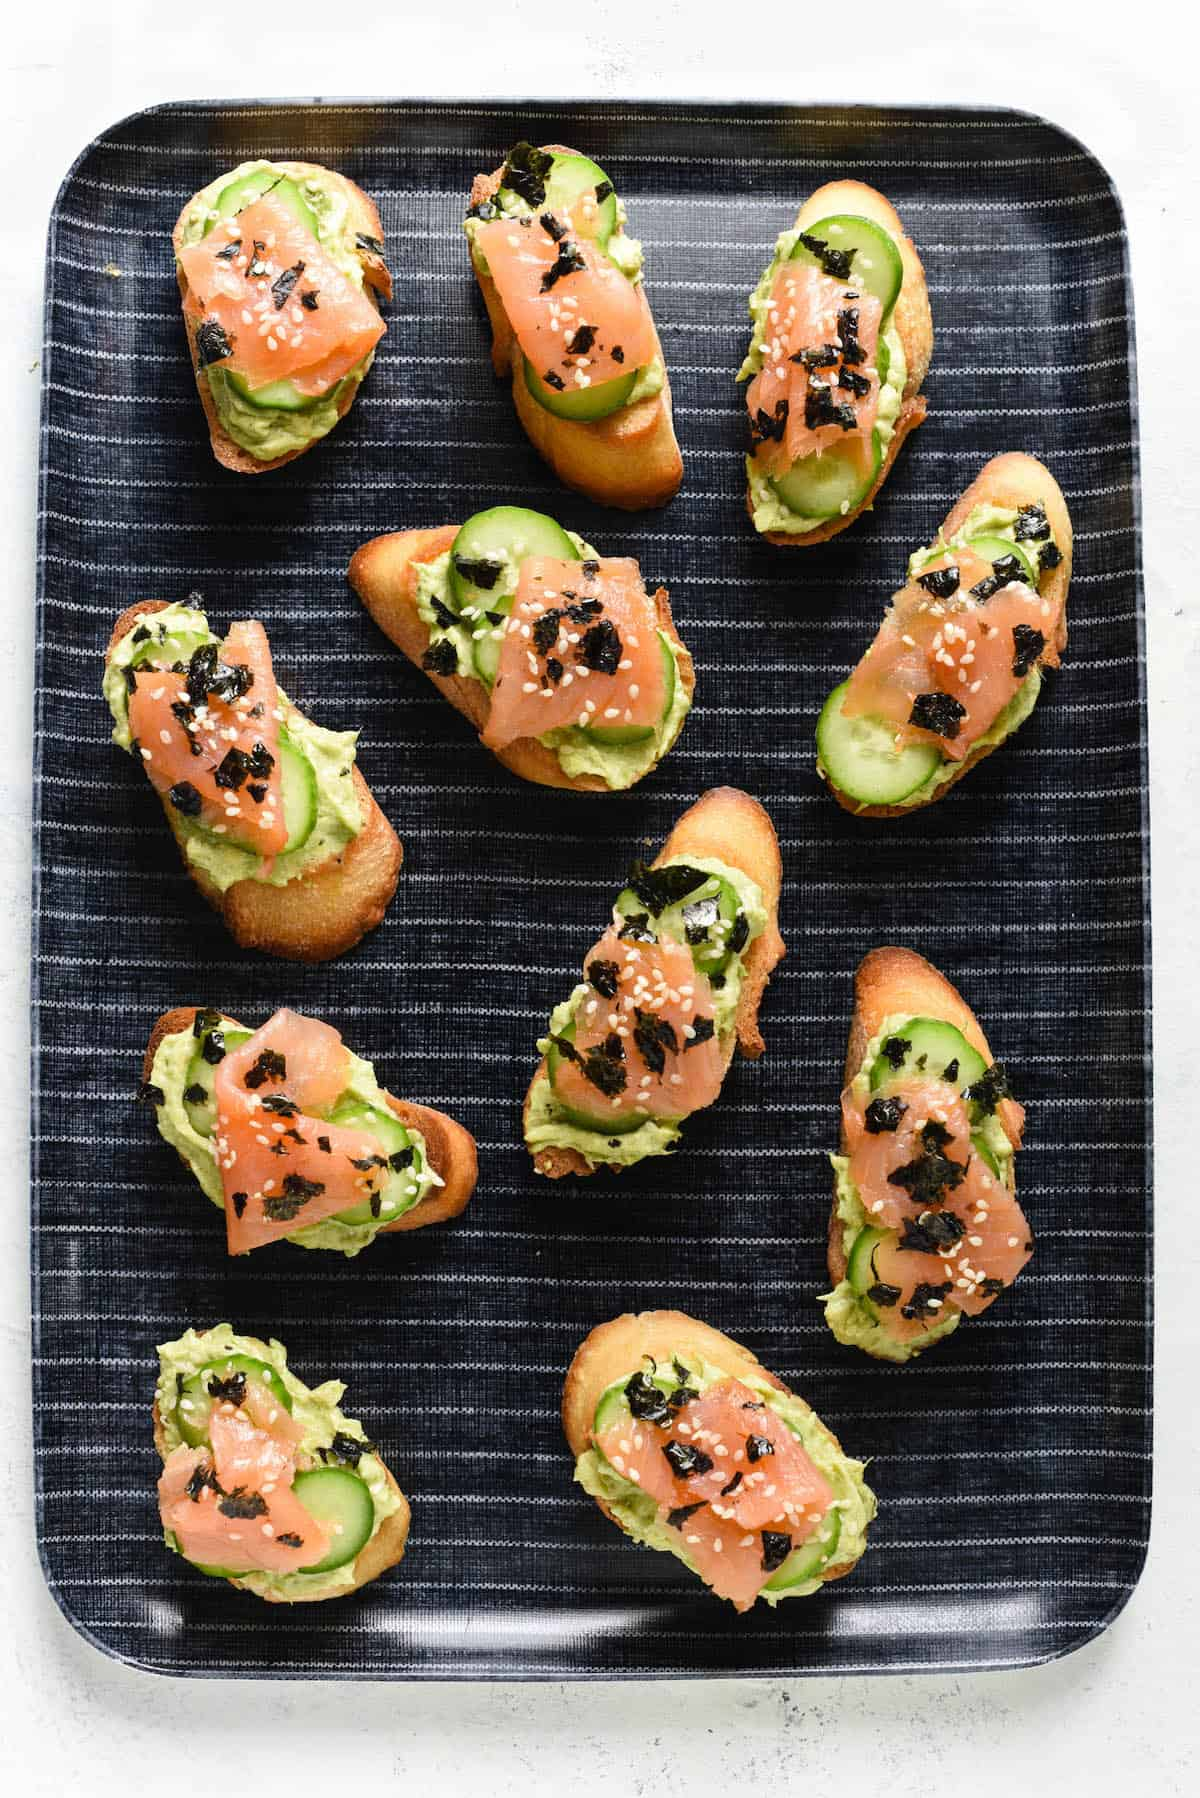 Avocado, salmon and cucumber crostini arranged on blue and white striped tray.